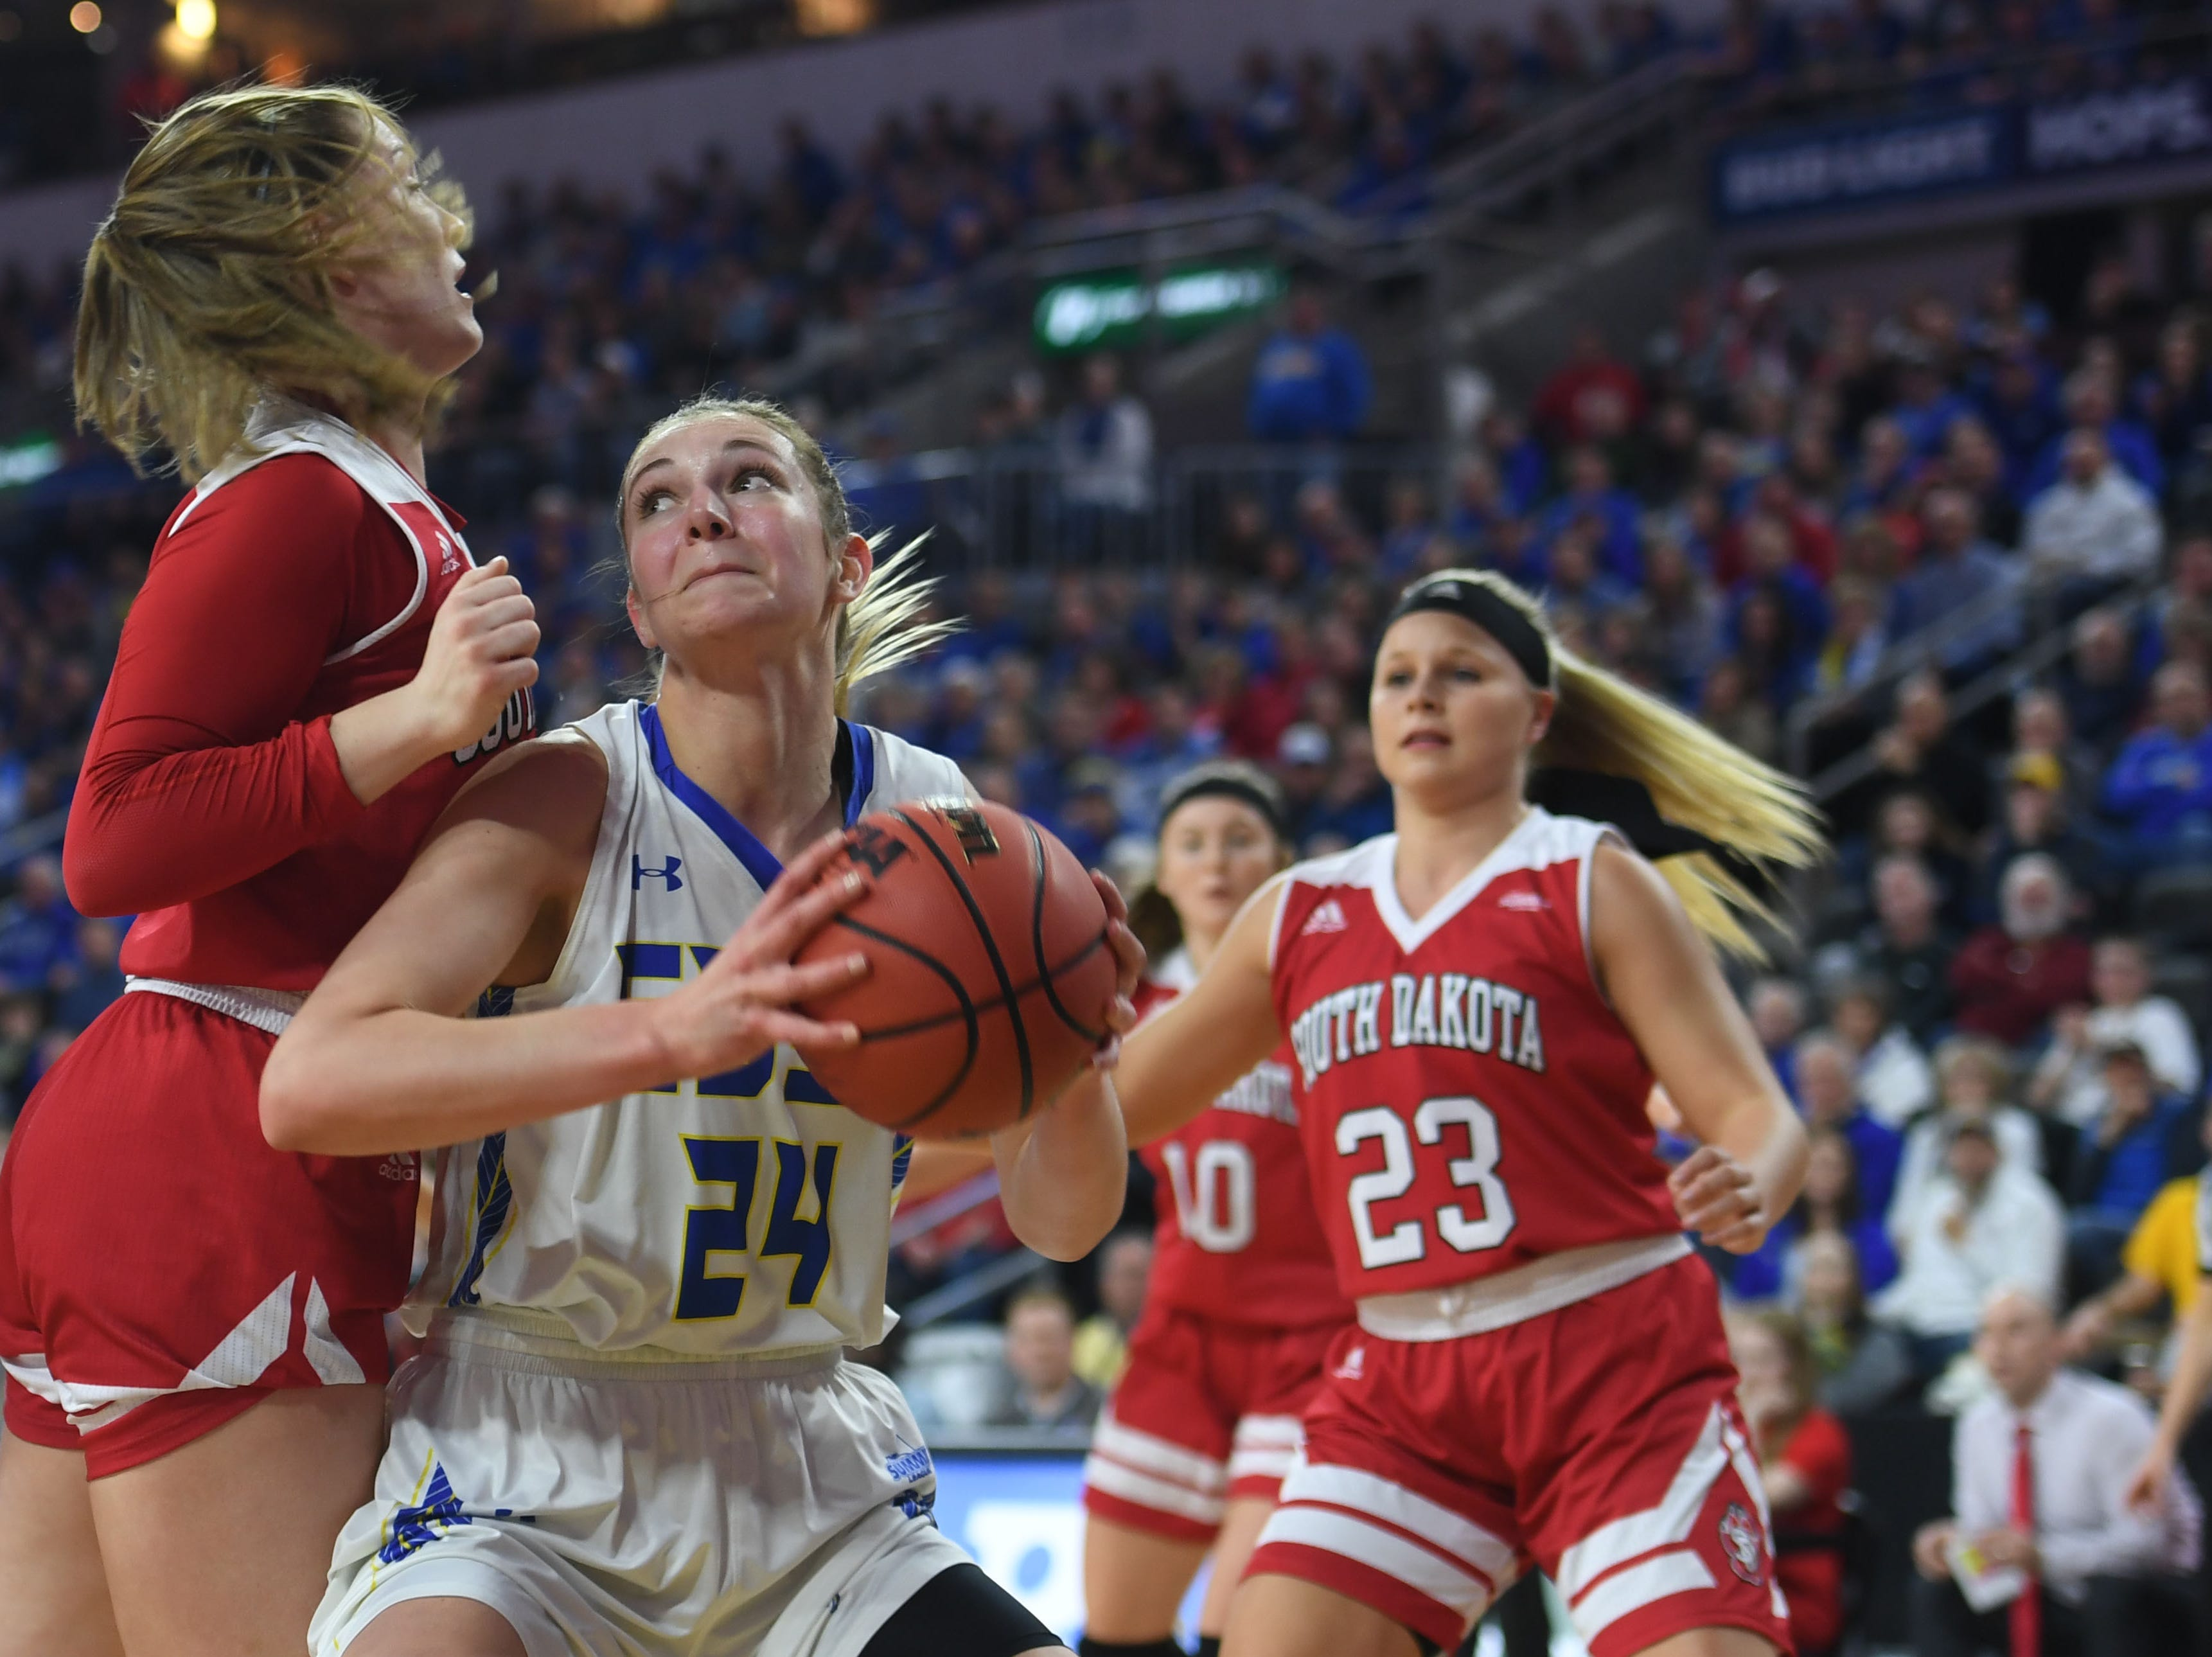 SDSU's Tagyn Larson goes against USD defense during the game Tuesday, March 12, in the Summit League women's championship at the Denny Sanford Premier Center in Sioux Falls.